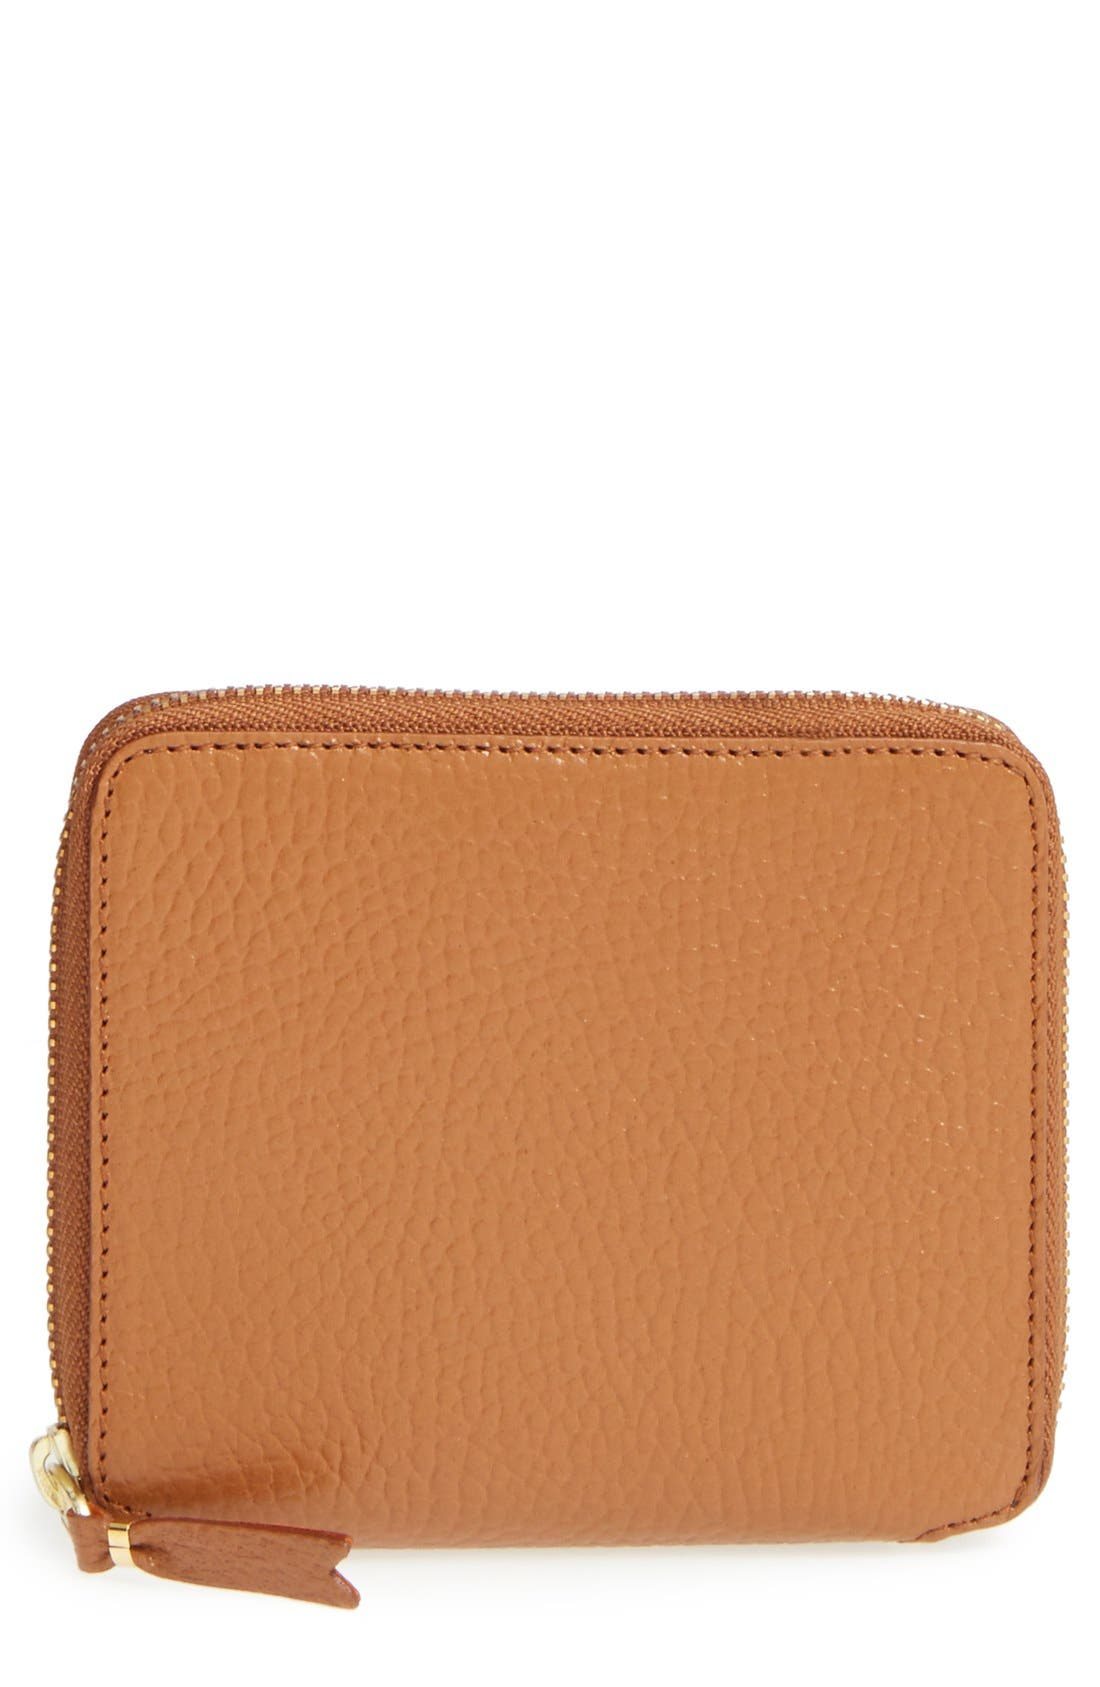 Leather Wallet,                             Main thumbnail 1, color,                             Brown/ Orange